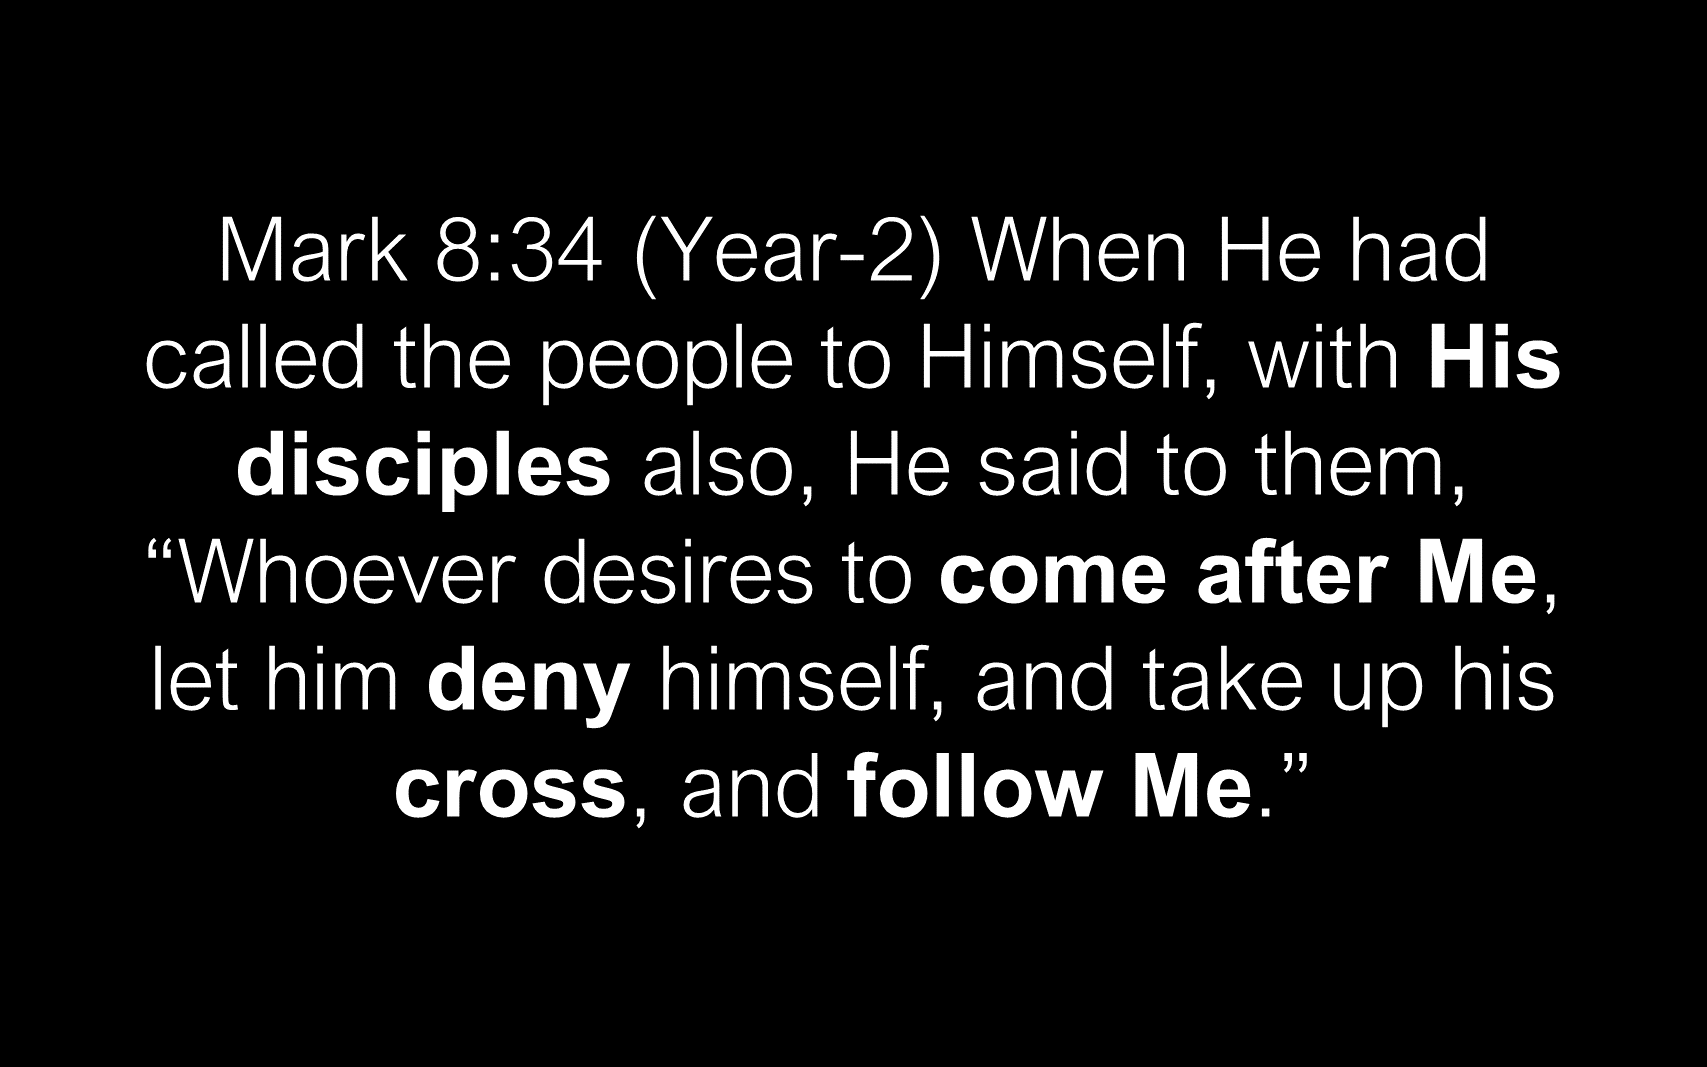 ESH-11 - The Discipline Of Disciple-Making - Disciples - Follow Christ & Make Disciples (10)